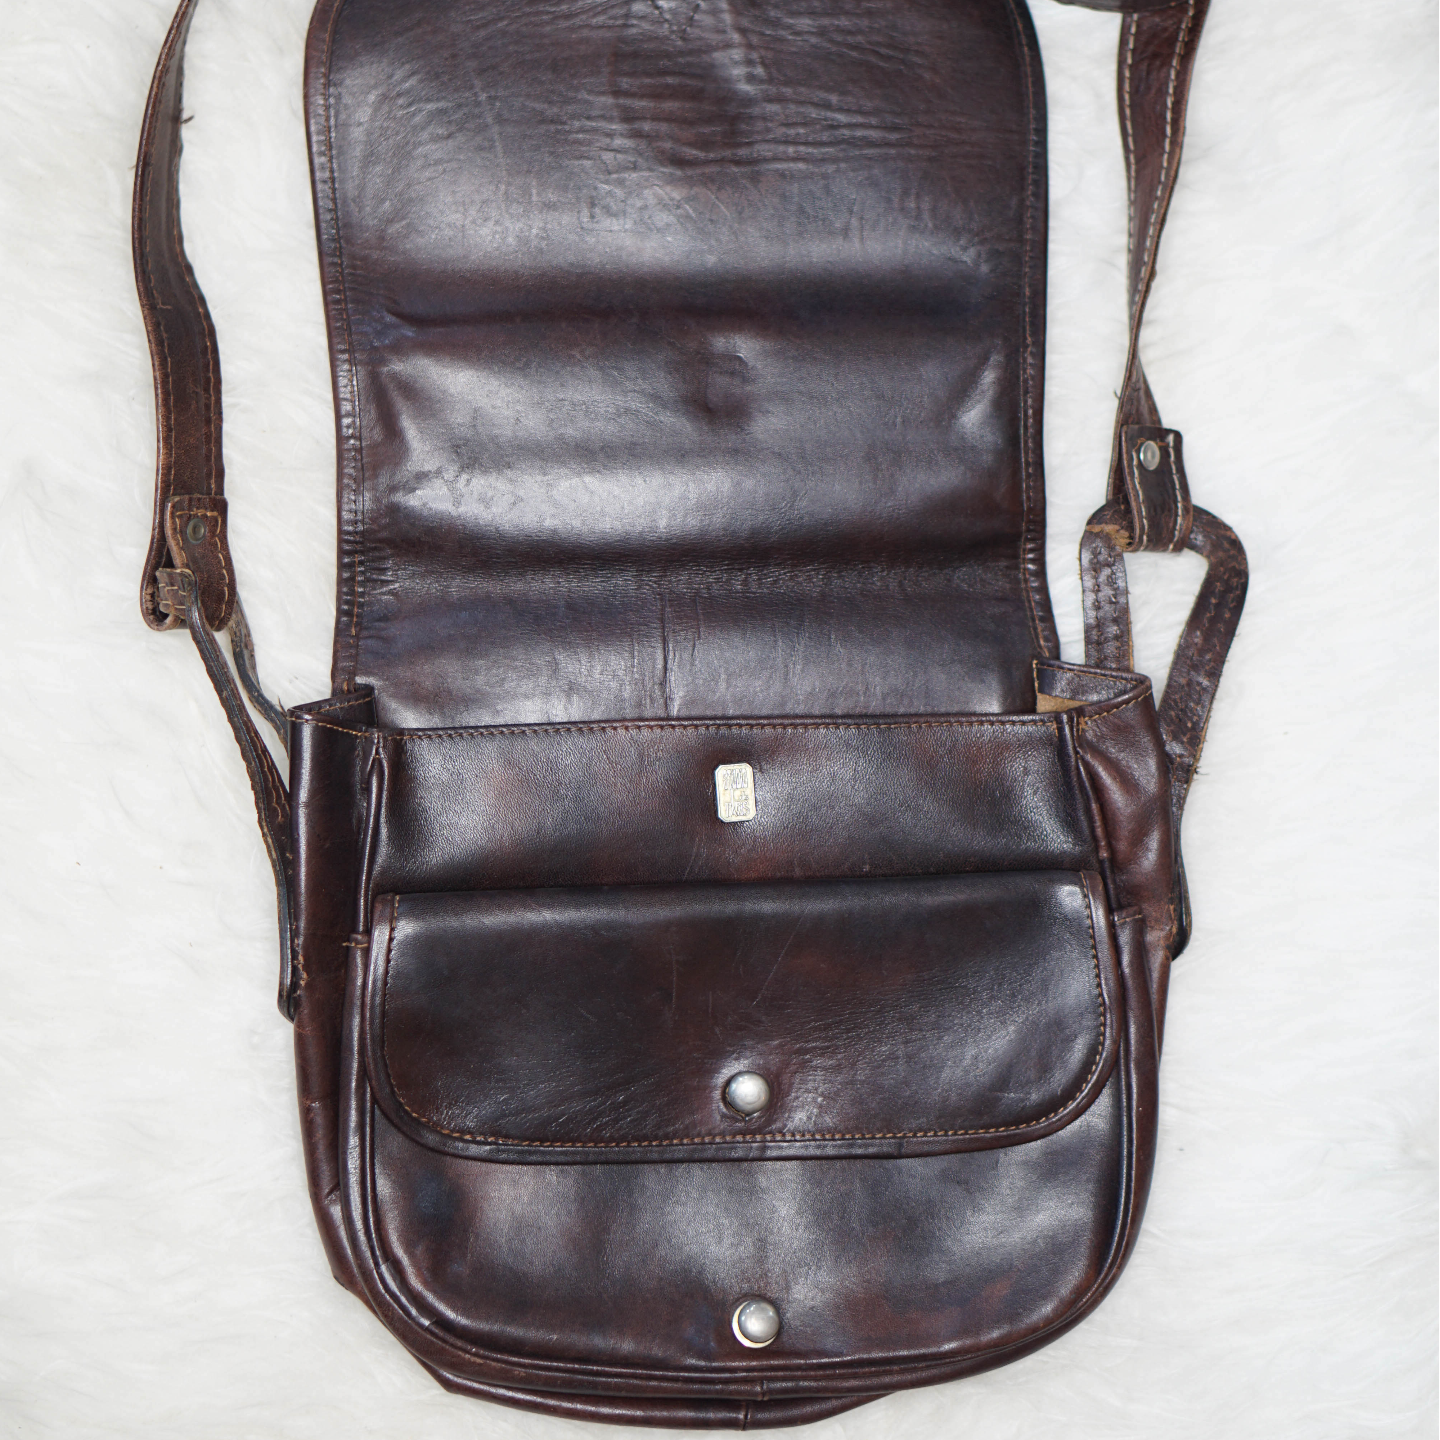 Vintage Dark Leather Saddle